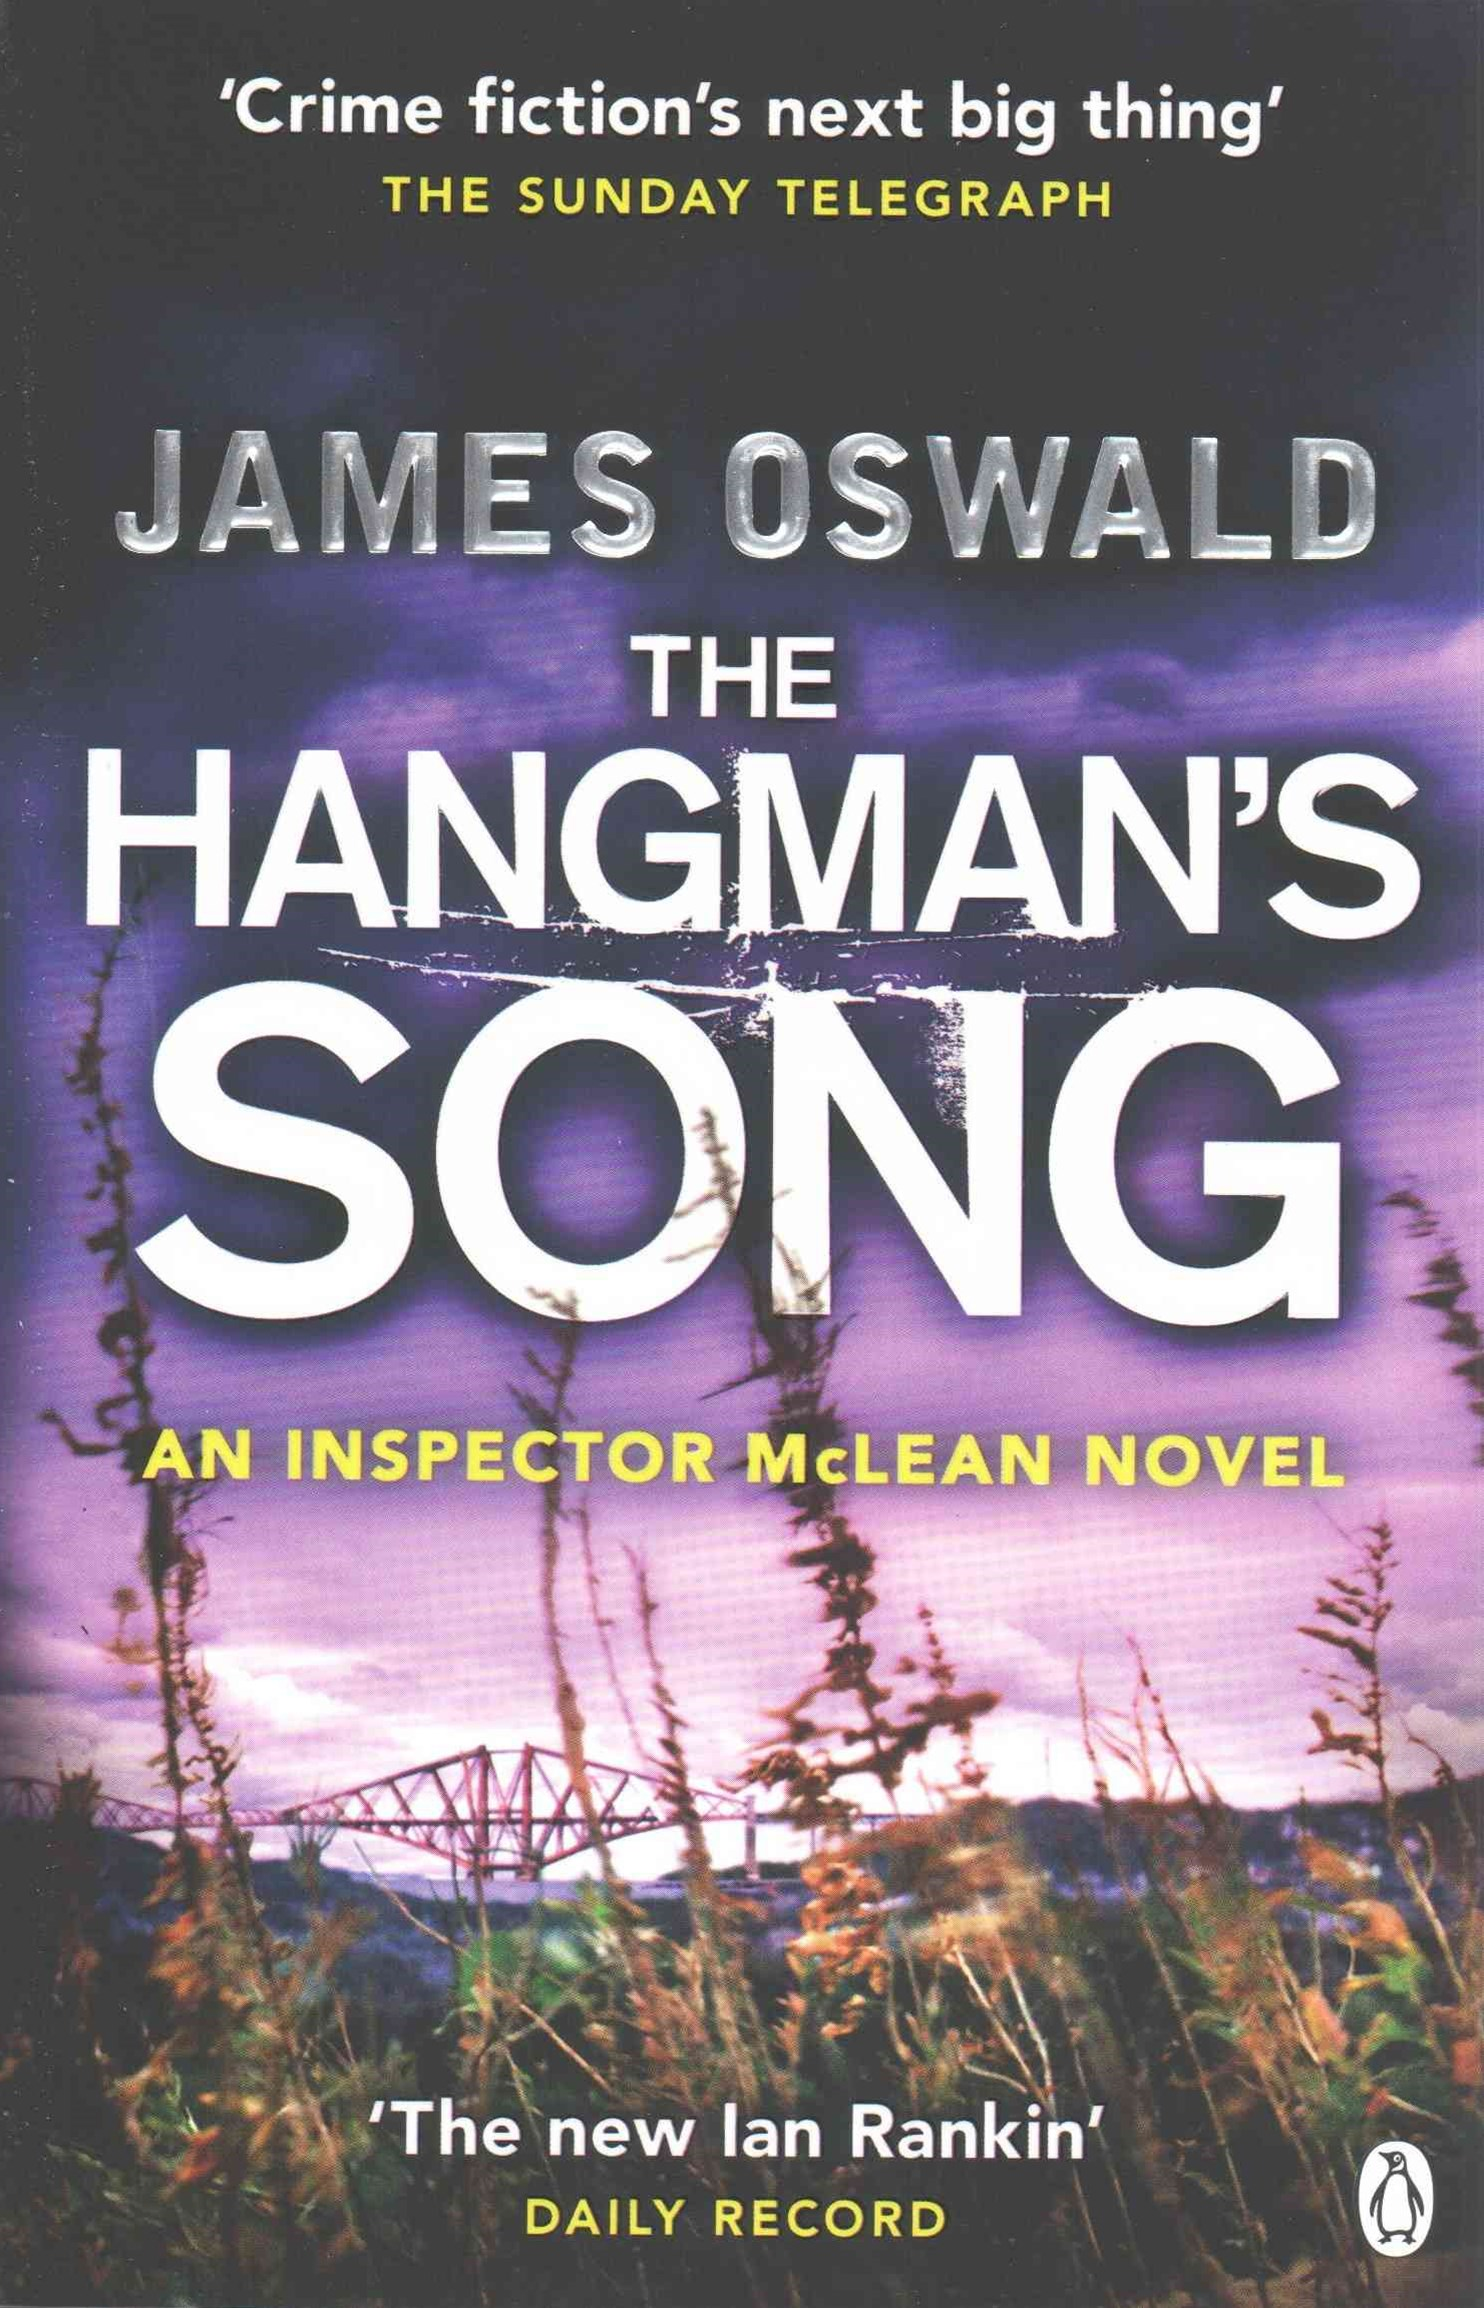 The Hangman's Song: An Inspector Mclean Novel